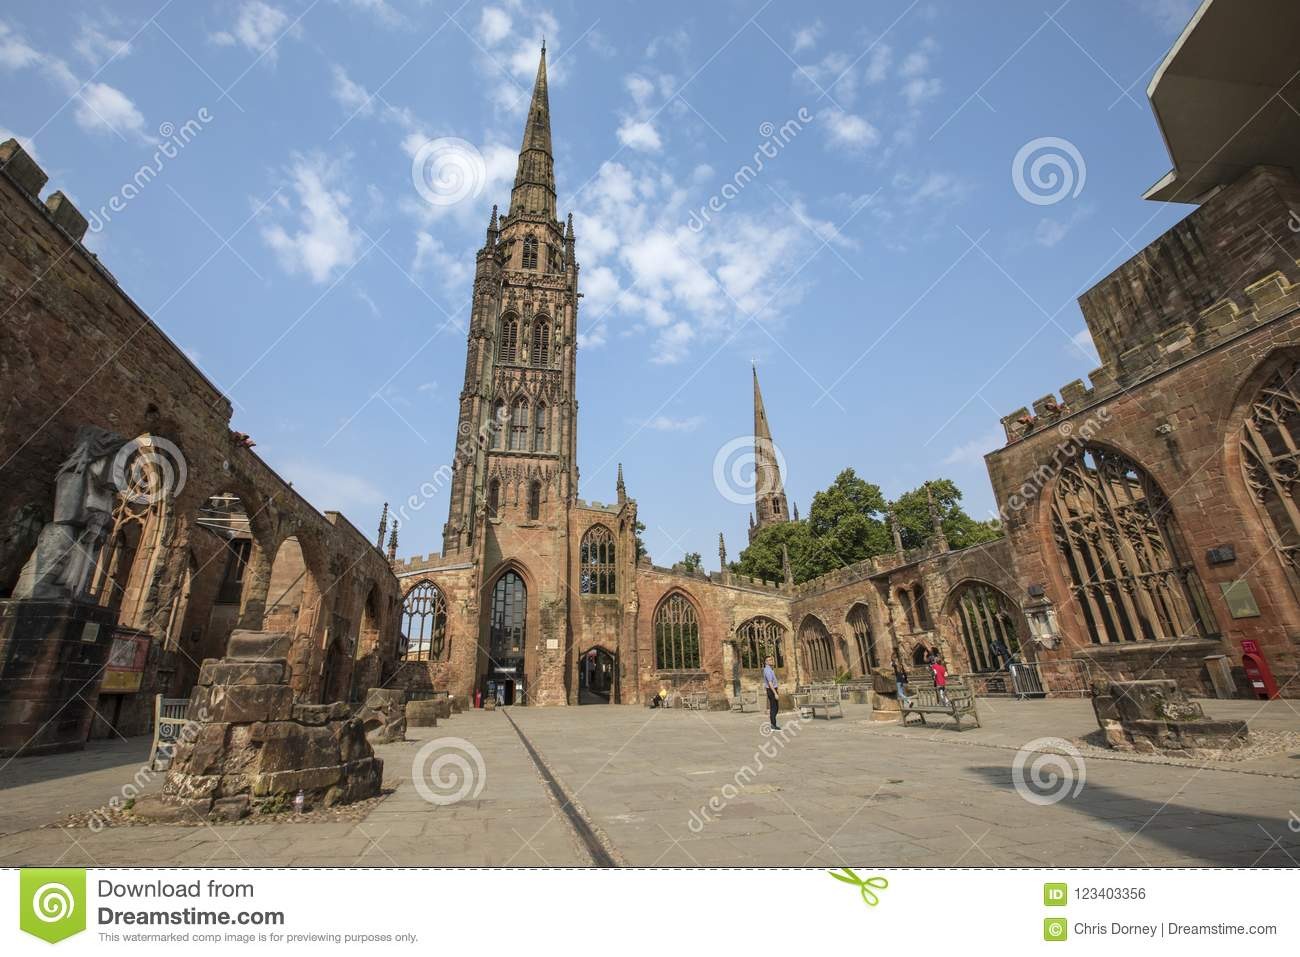 Coventry Cathedral in the UK